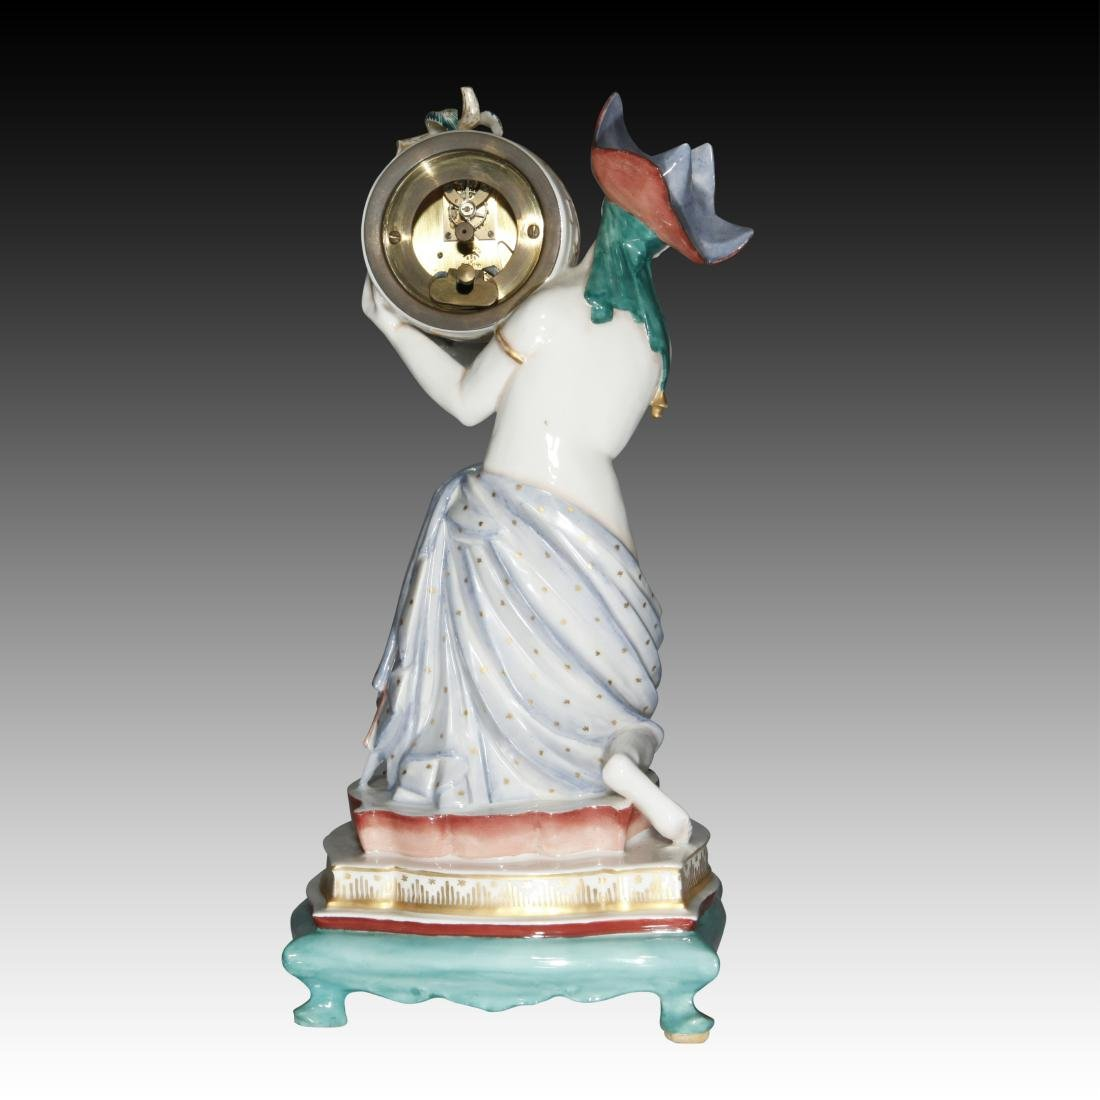 Female Semi-nude Figurine carrying a Clock - 2